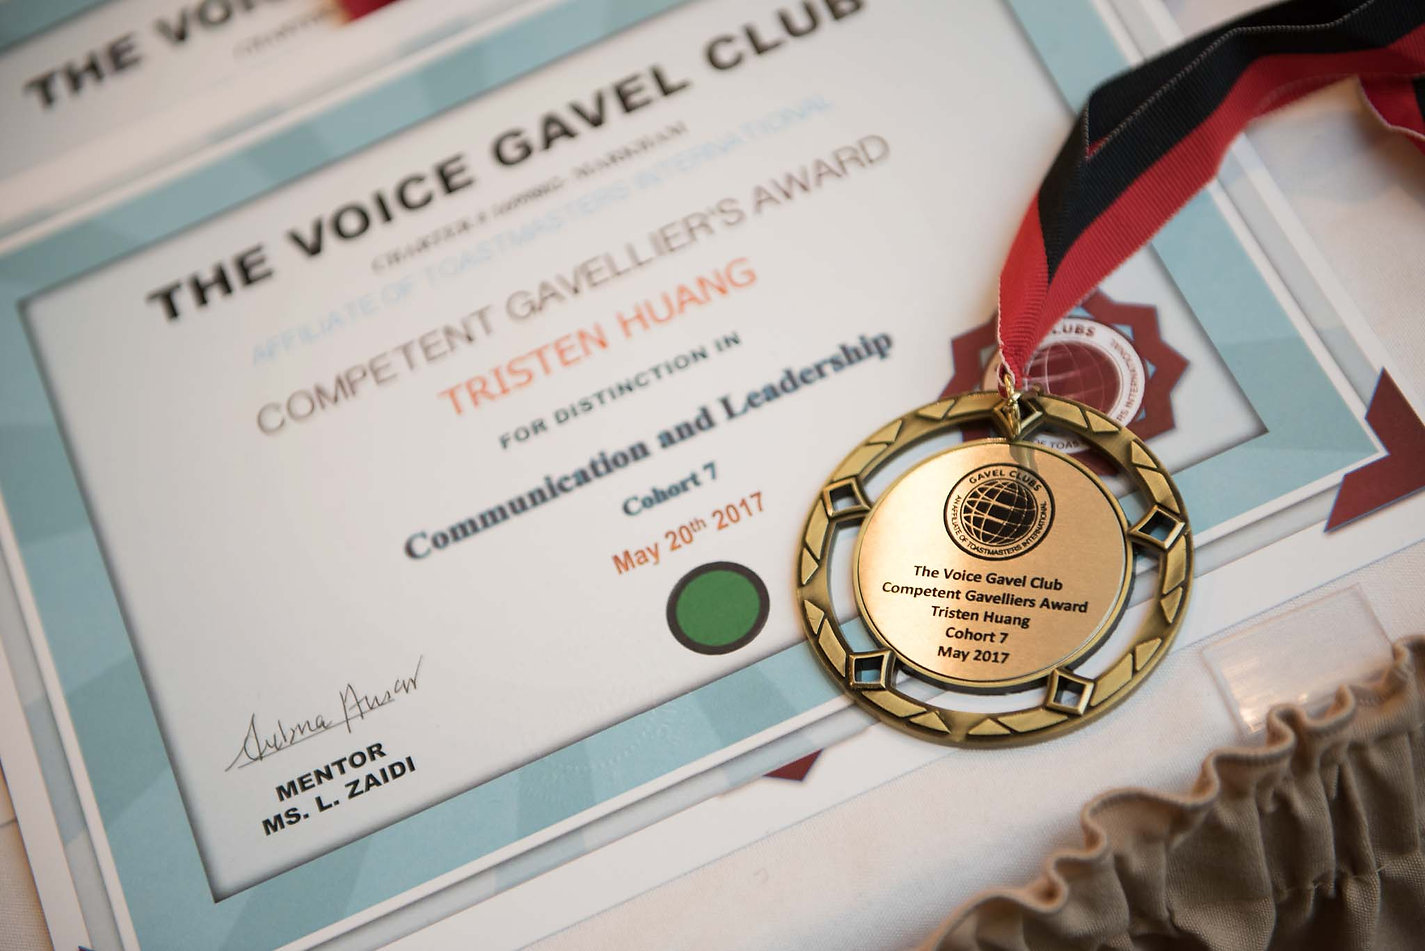 the voice gavel club public speaking youth leadership toastmasters international